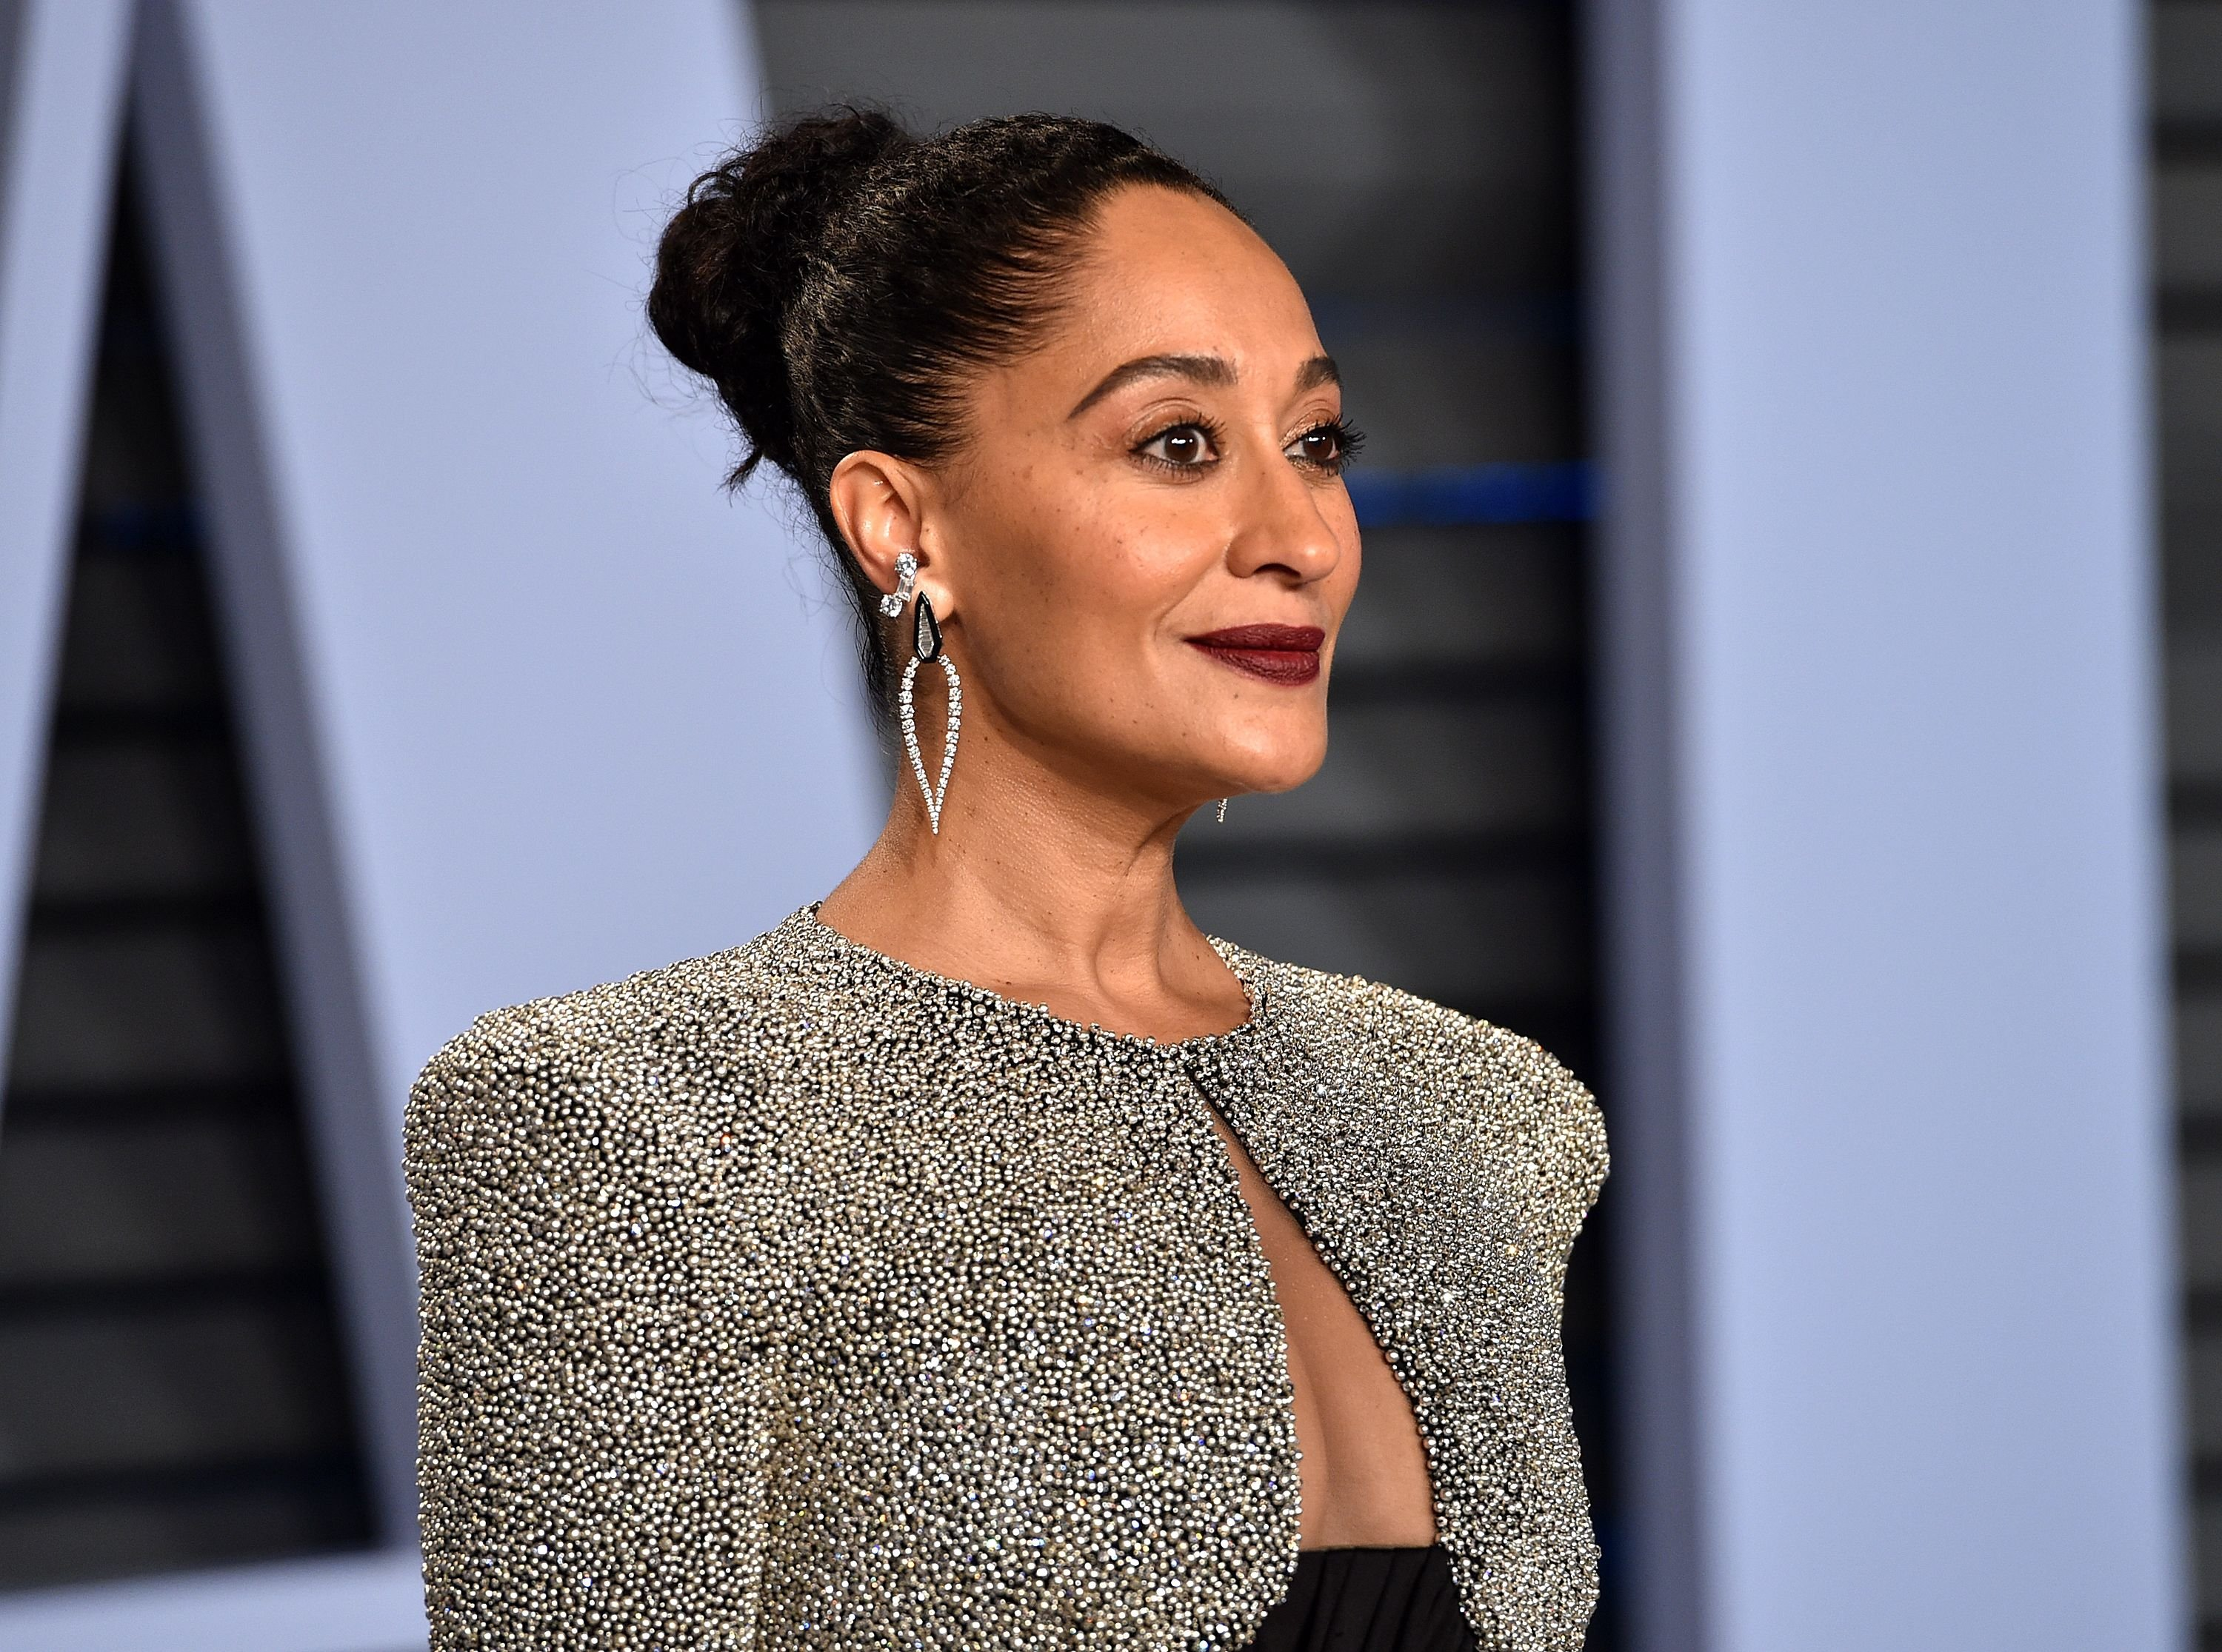 Tracee Ellis Ross during the Vanity Fair Oscar Party on March 4, 2018 in Beverly Hills, California.   Source: Getty Images